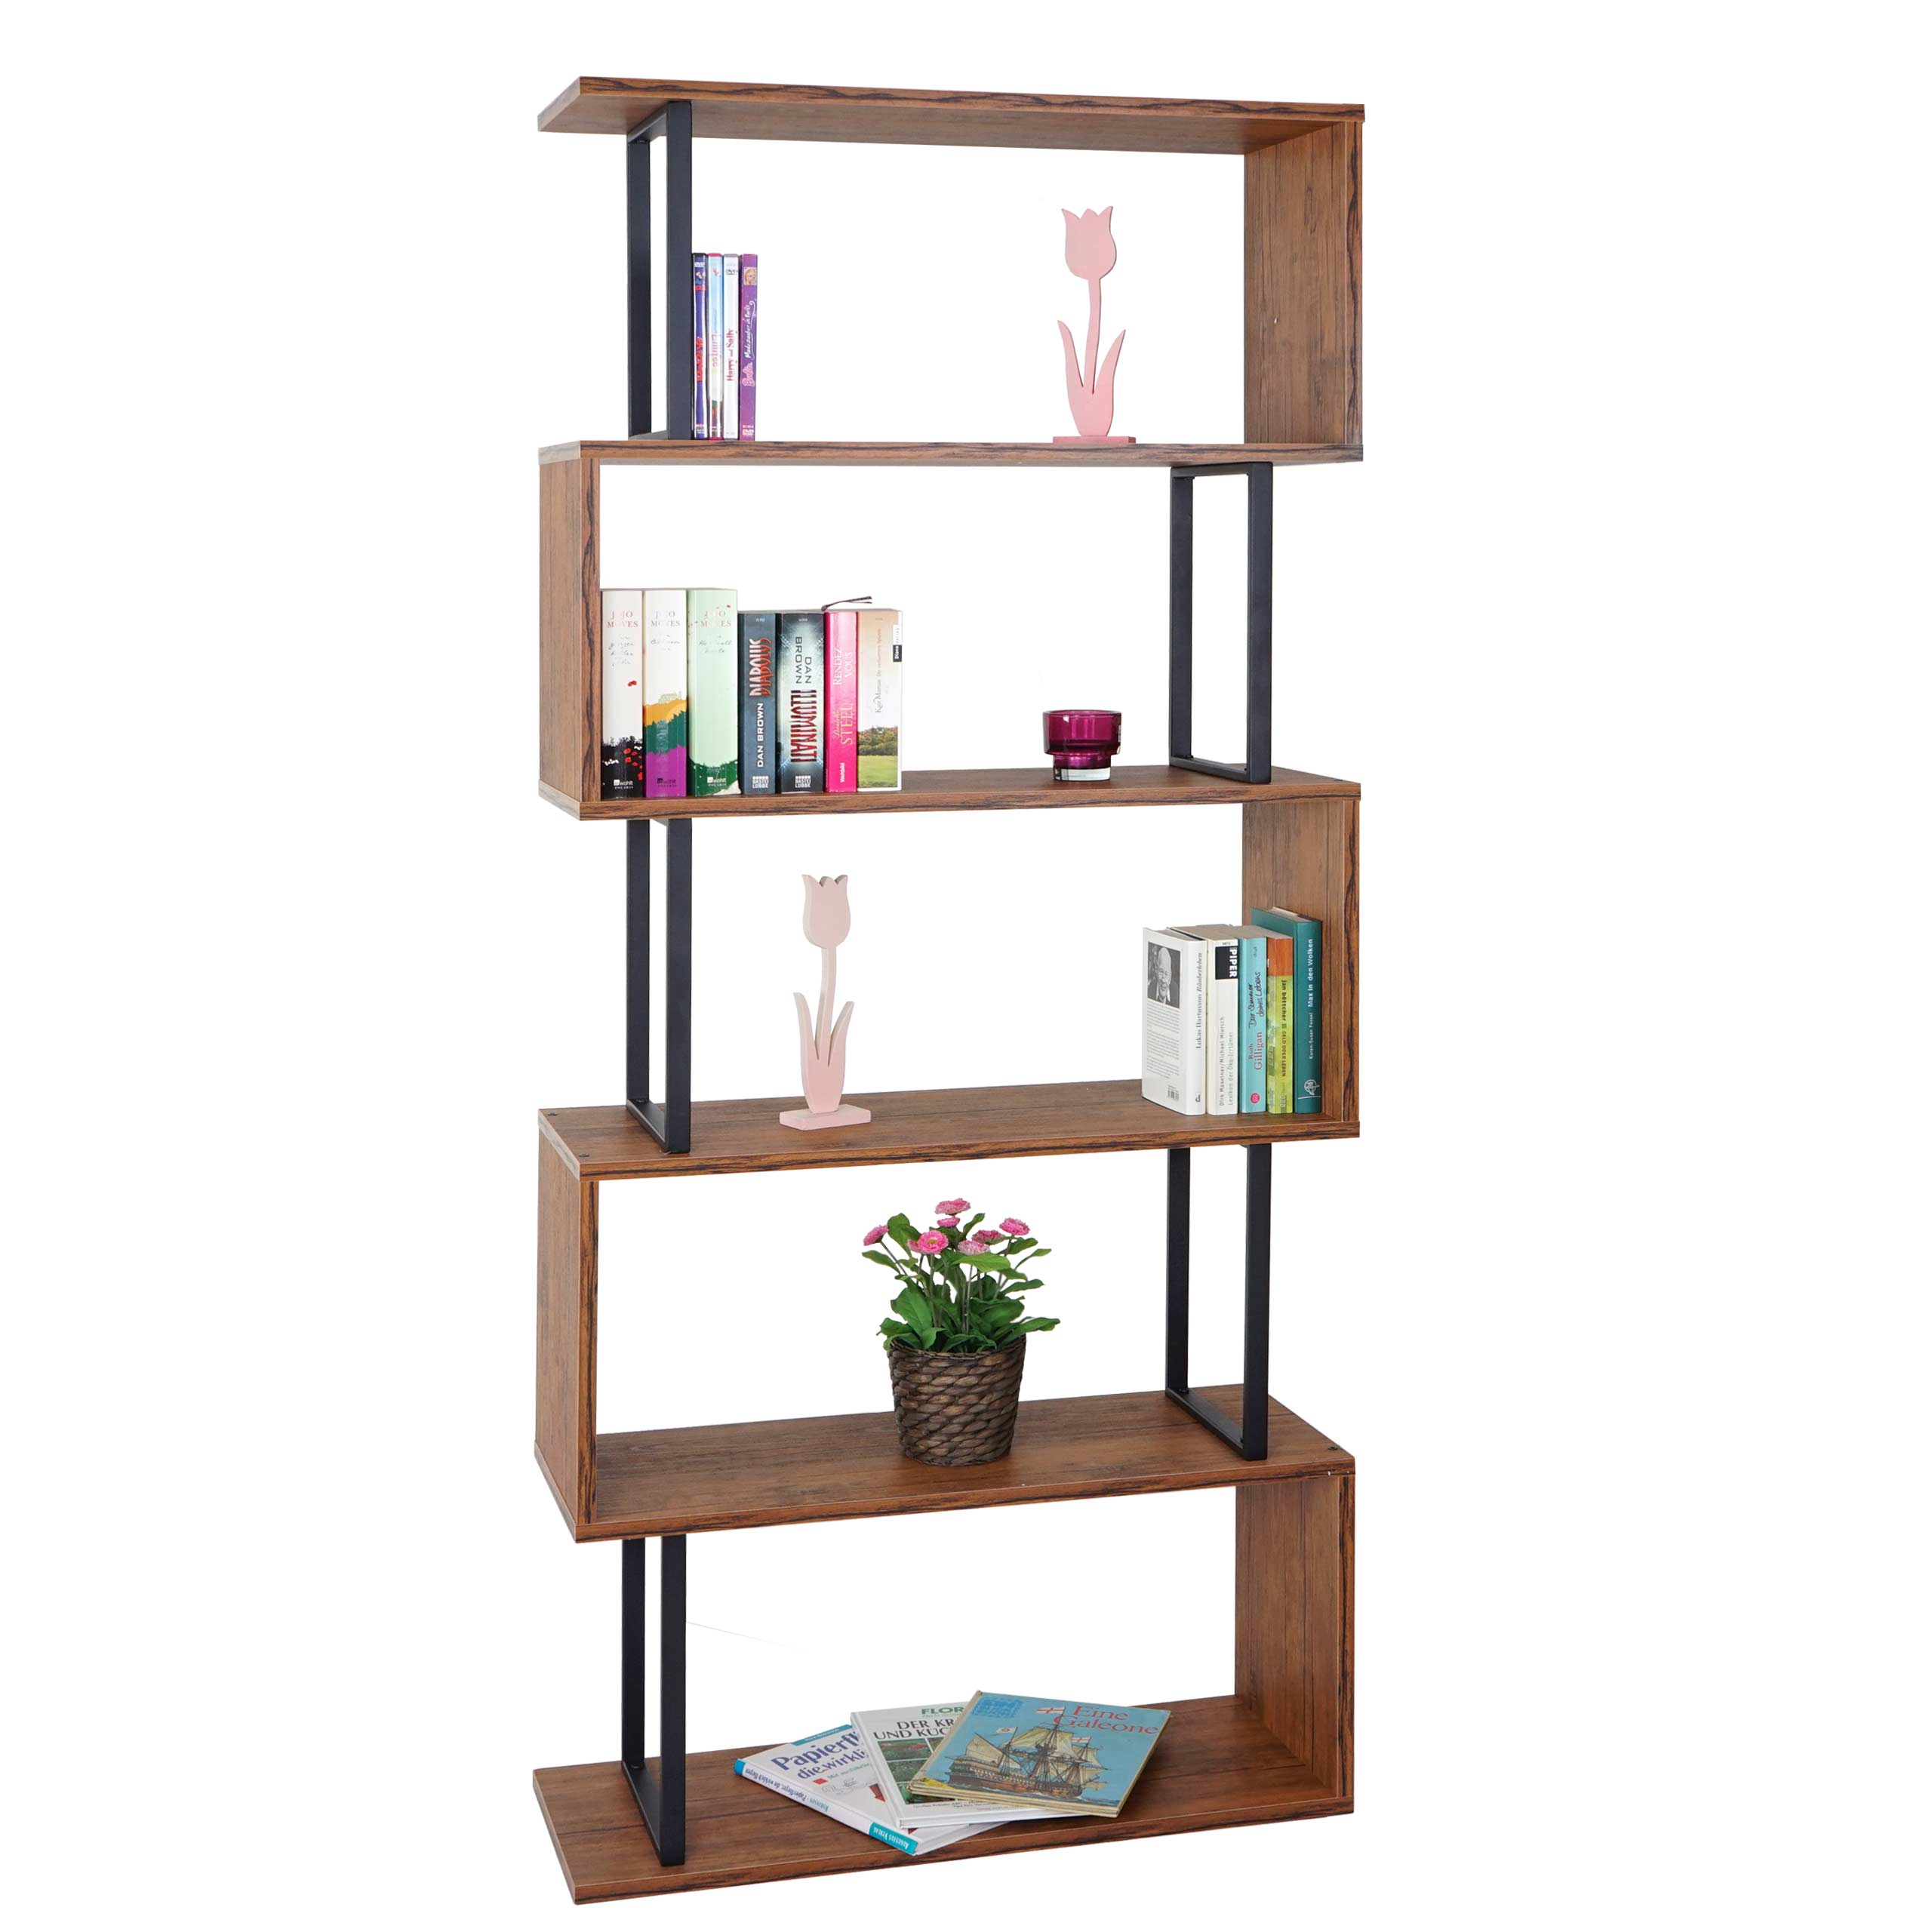 Regal Wildeiche Bücherregal Hwc A27 Standregal Wohnregal 183x80cm 3d